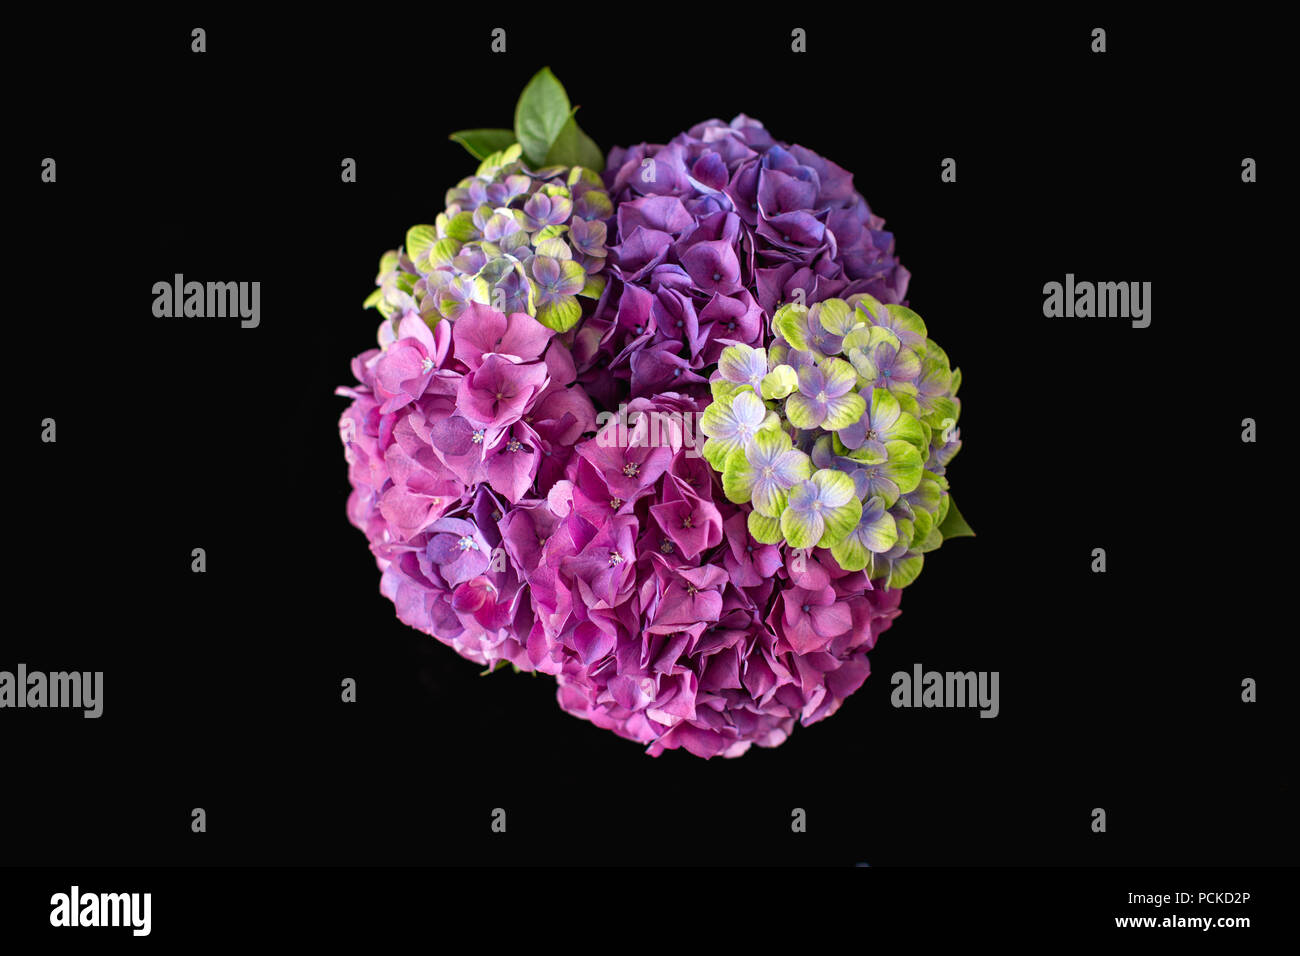 A vivid colourful (colourful) bouquet (bunch) of pink, purple and yellow Hydrangeas seen from above on a black background - Stock Image